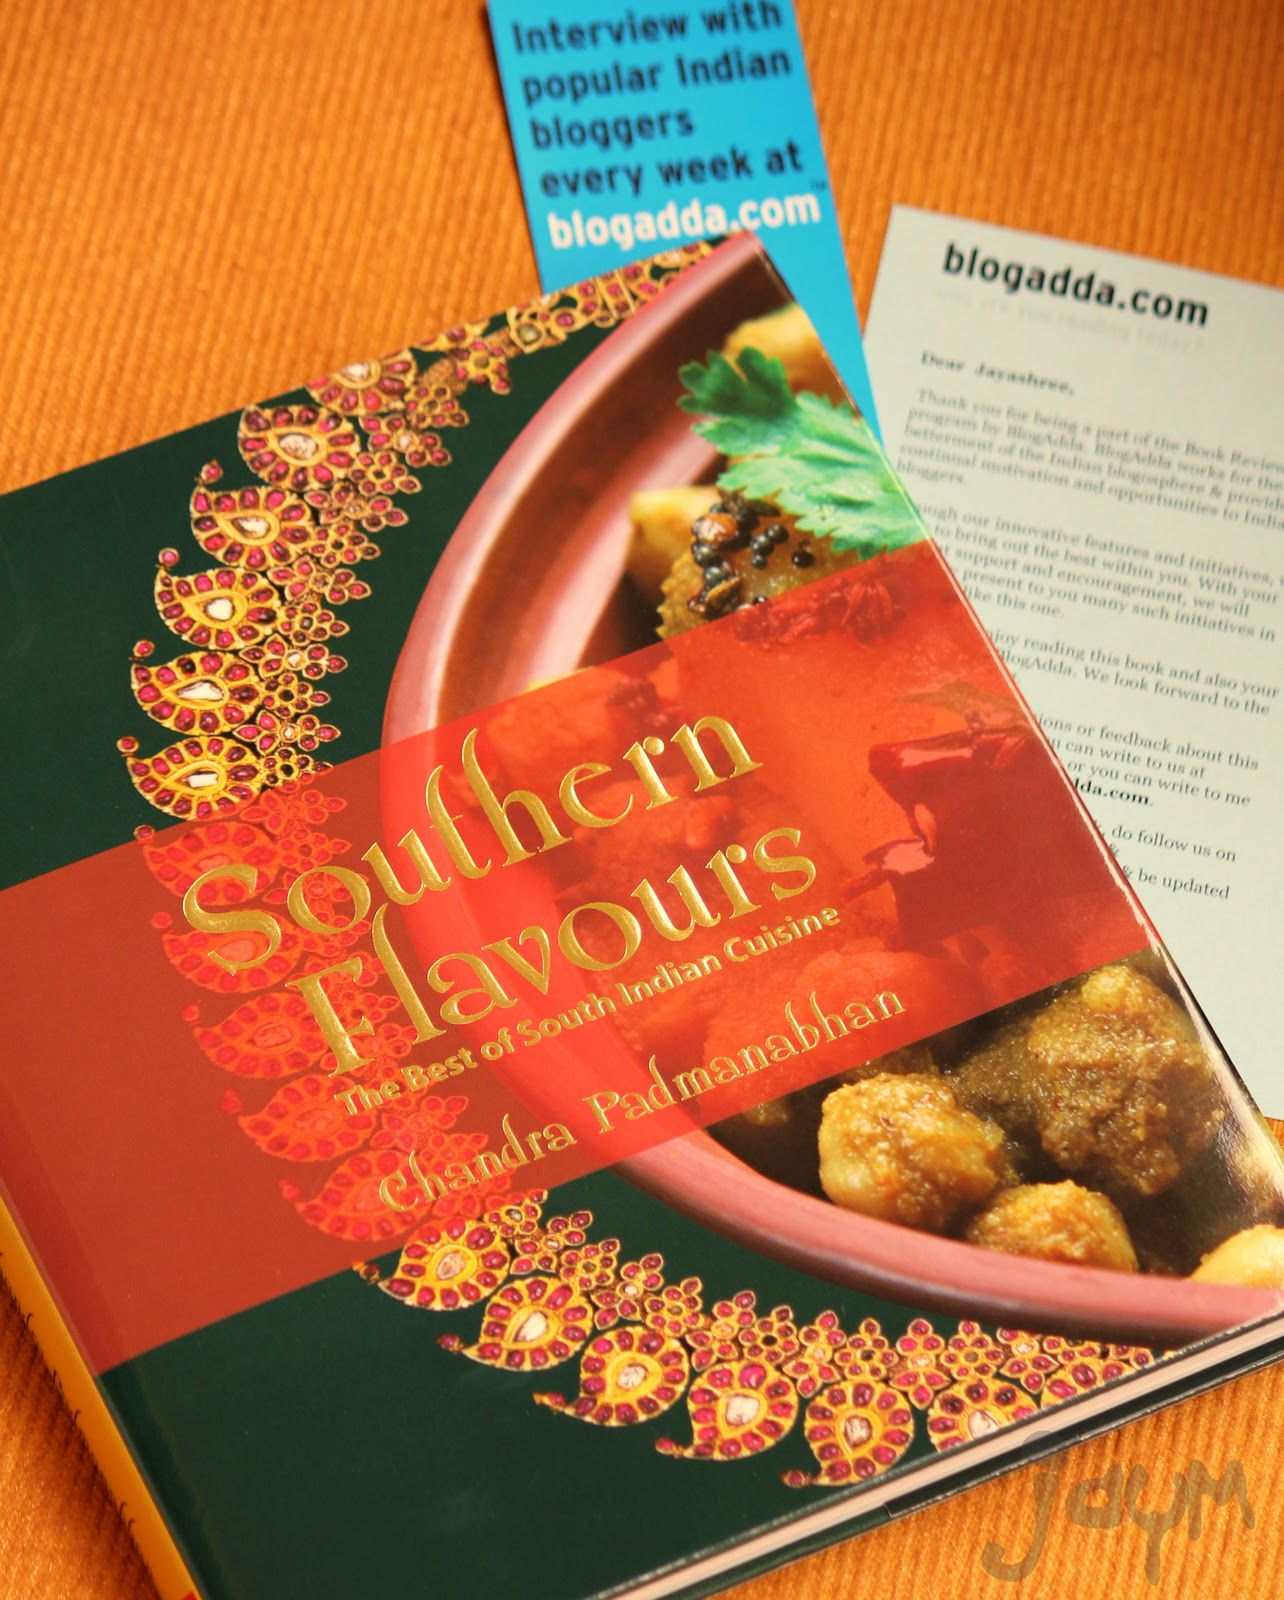 Book review southern flavours by chandra padmanabhan foodie in me its only when my mom is around i get the courage to prepare some authentic south indian dishes i felt like im holding our family recipe book in my hand solutioingenieria Choice Image